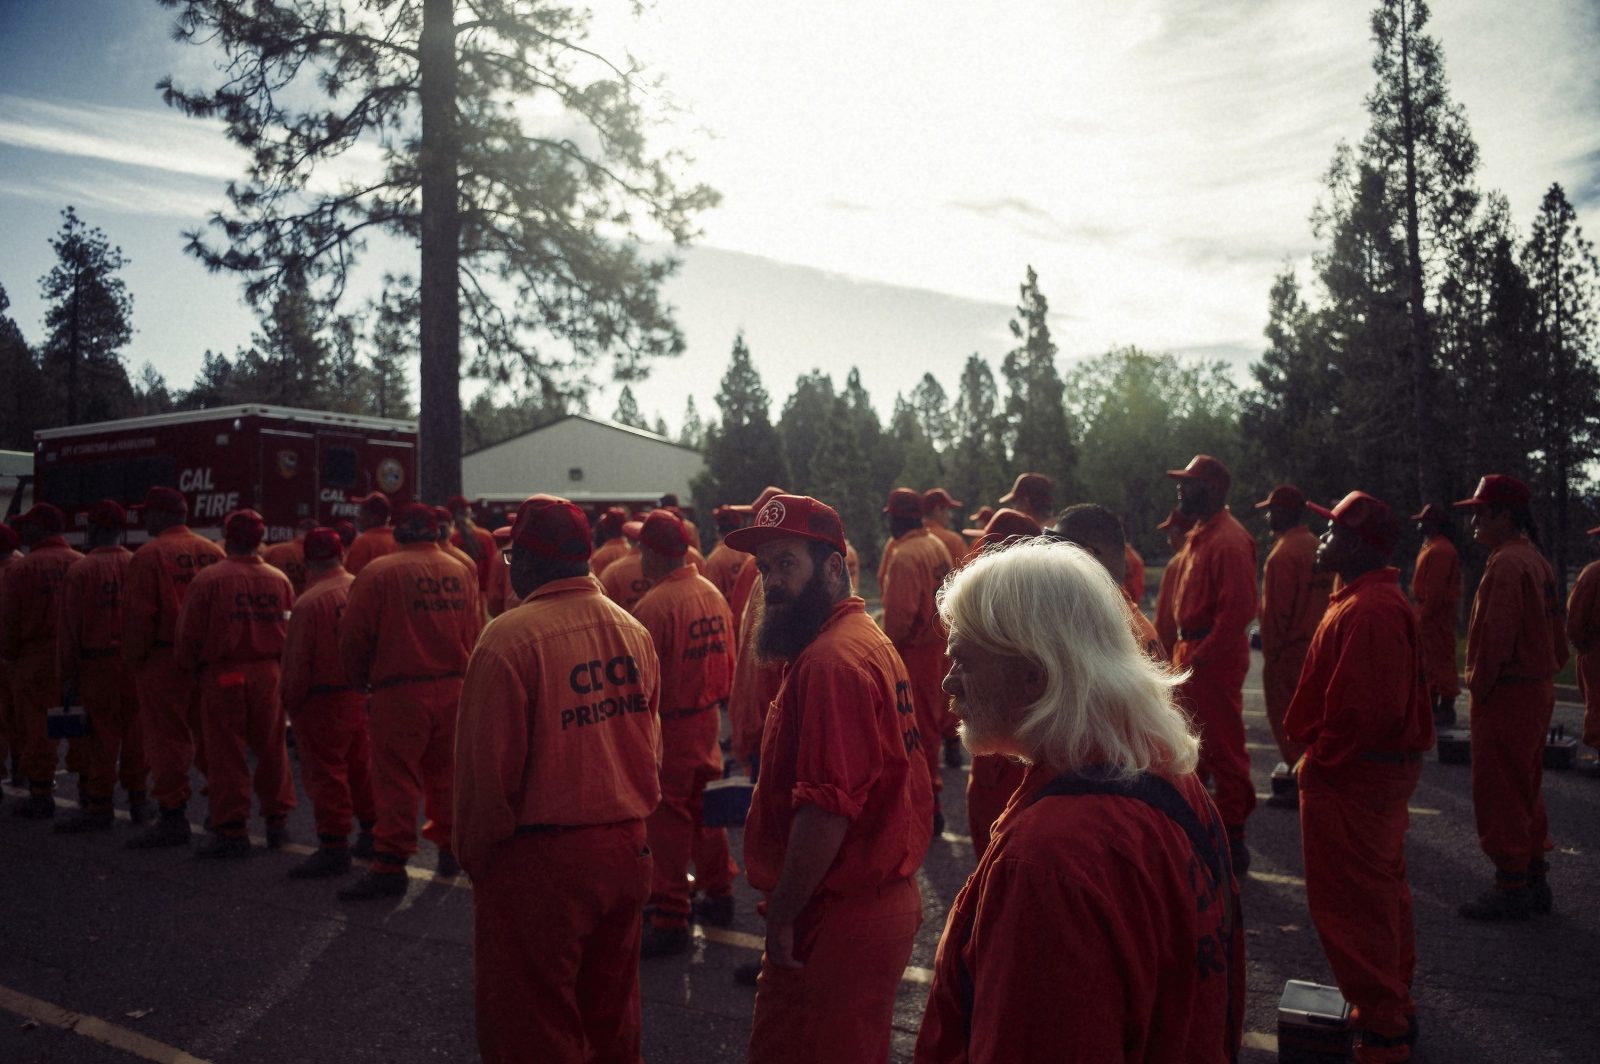 Inmate firefighters line up to deploy for a day's work at Growlersburg Conservation Camp.